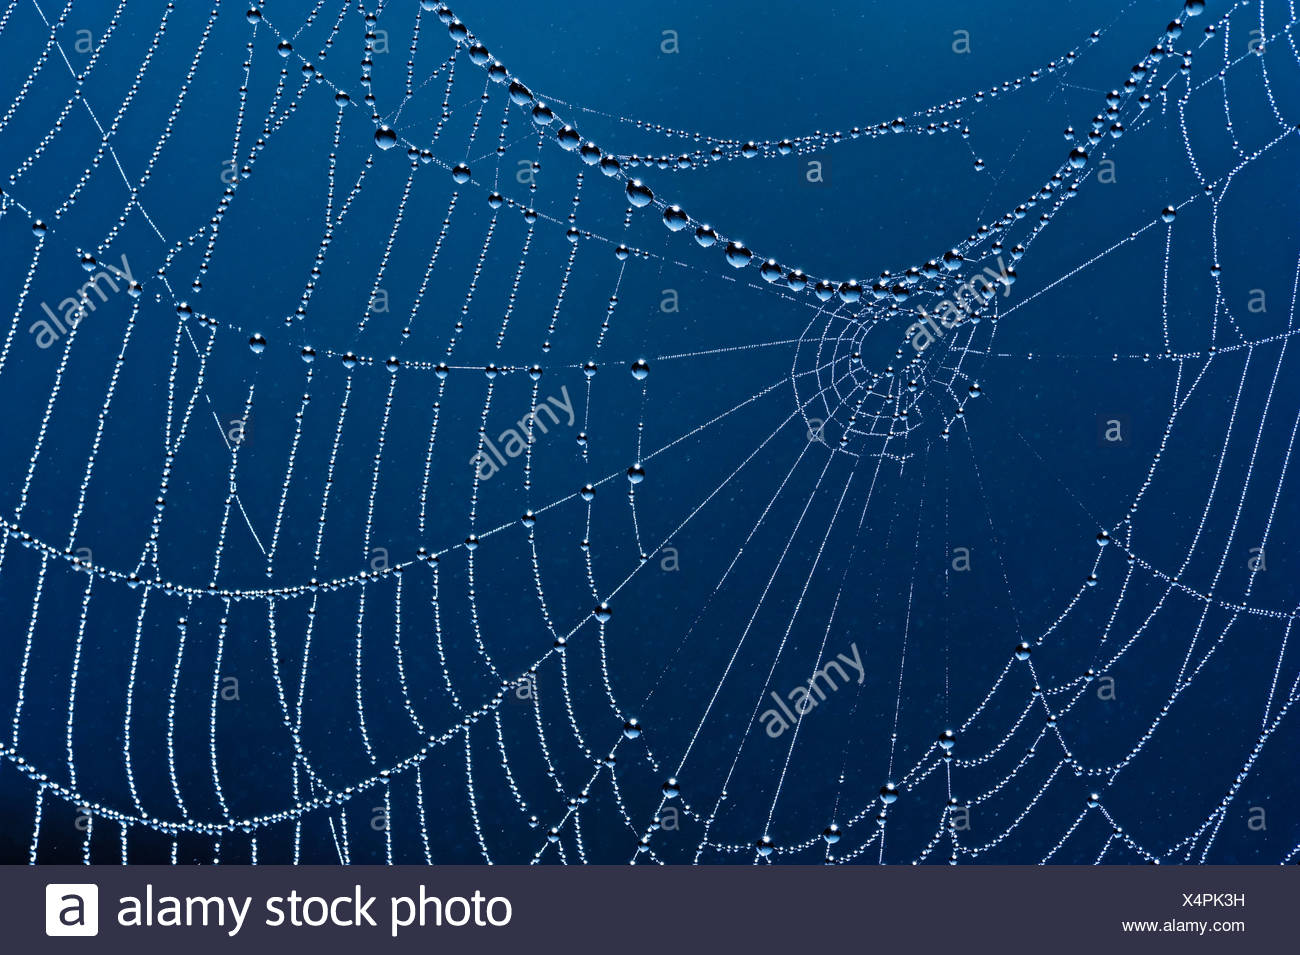 Spider web with dew drops, Germany, Europe - Stock Image